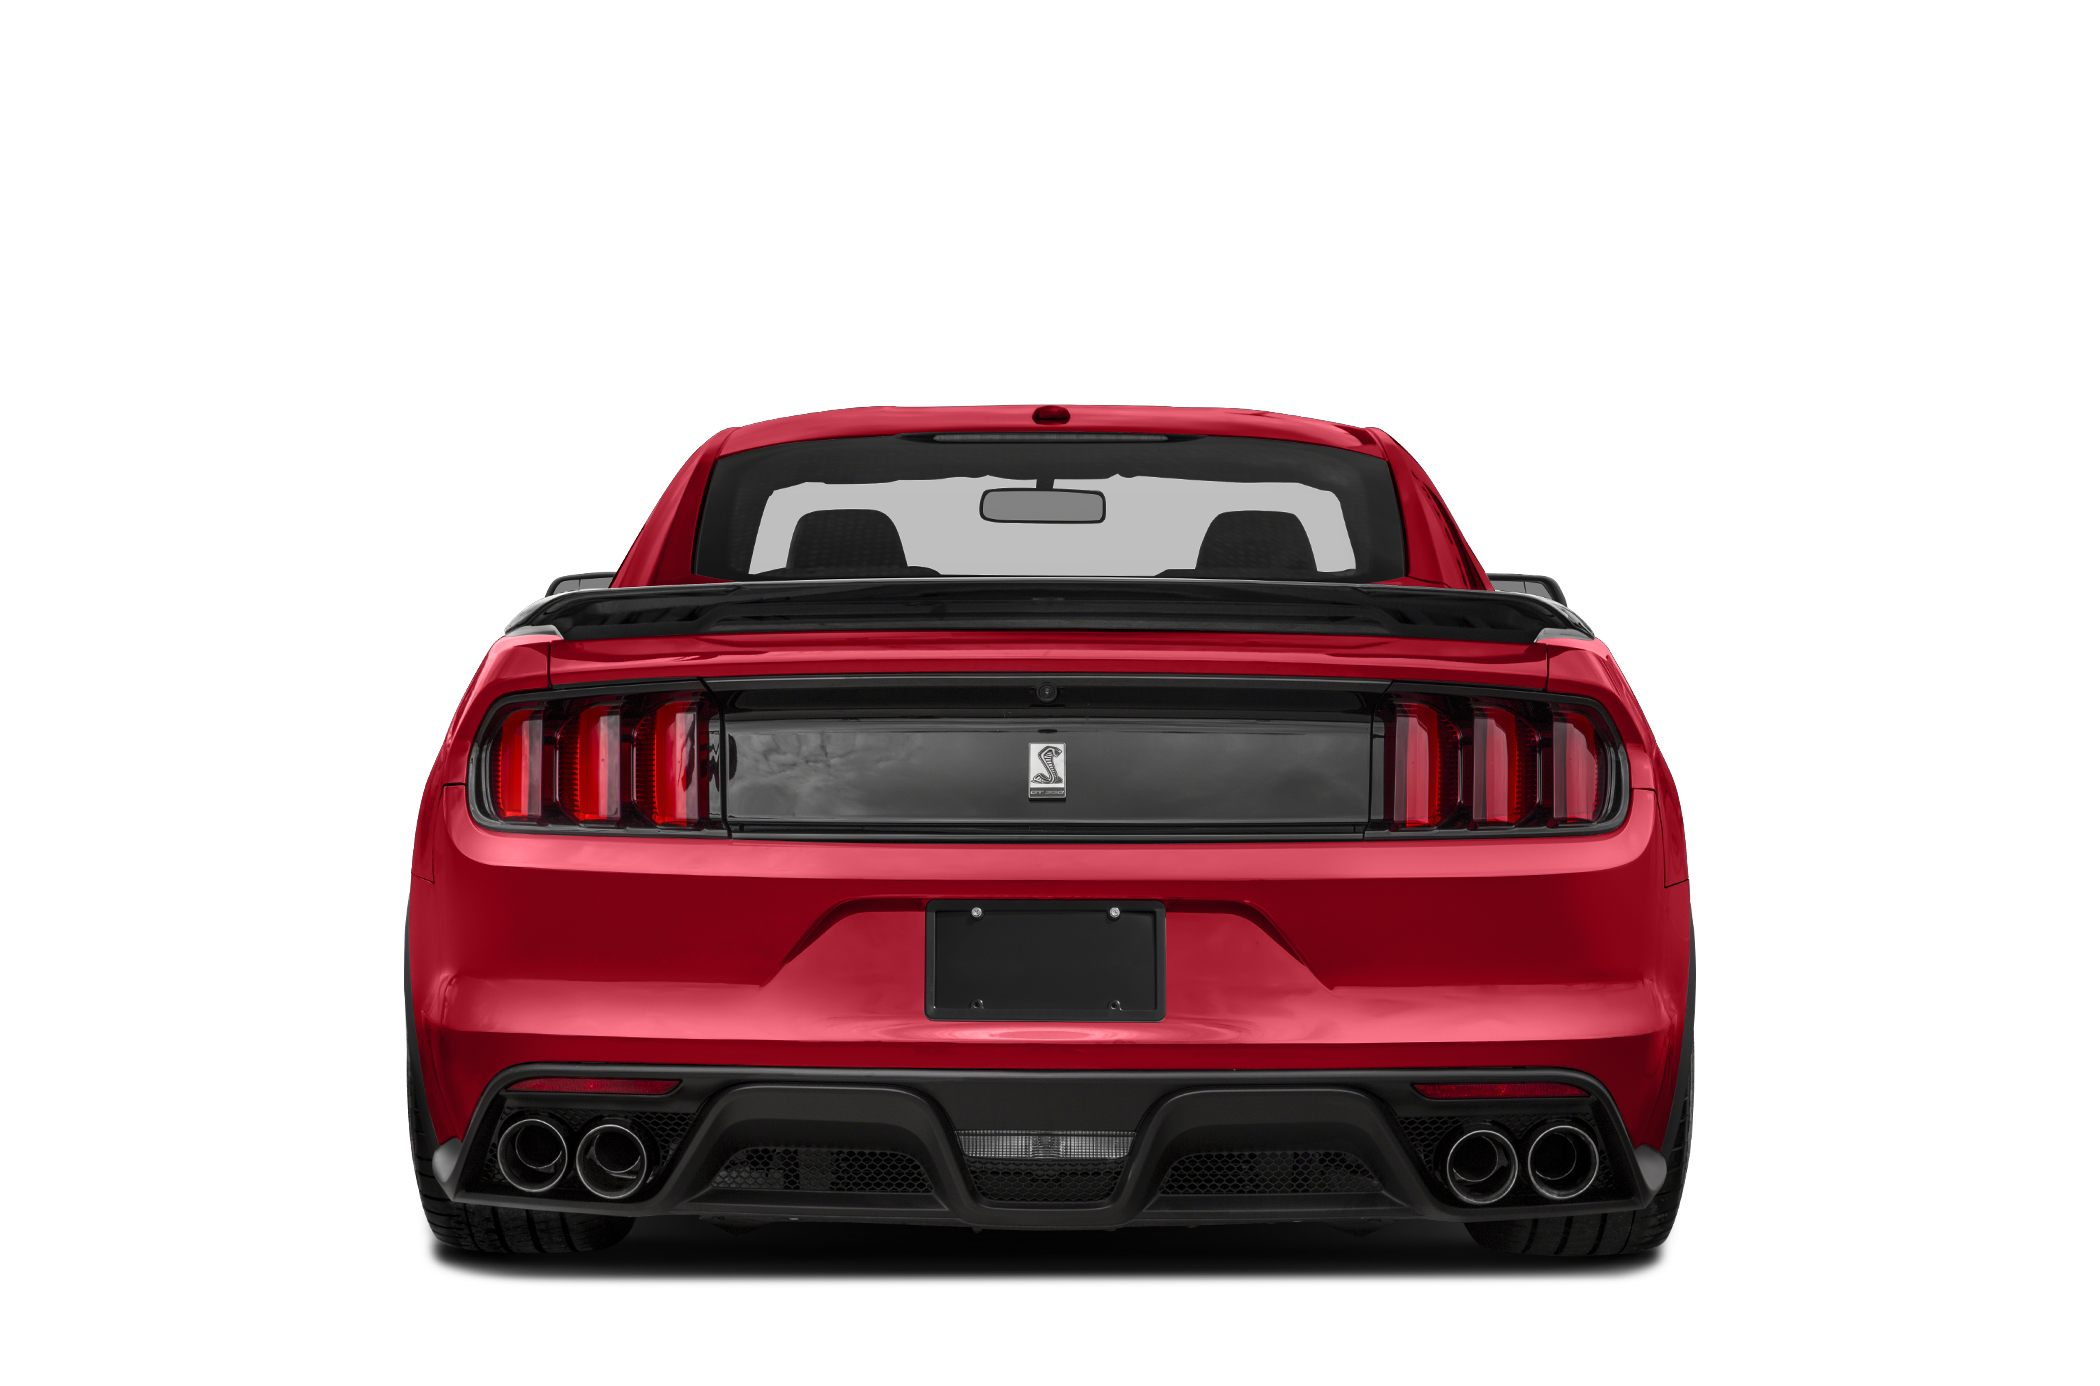 New 2019 ford shelby gt350 for sale lease levittown ny vin 1fa6p8jz9k5551377